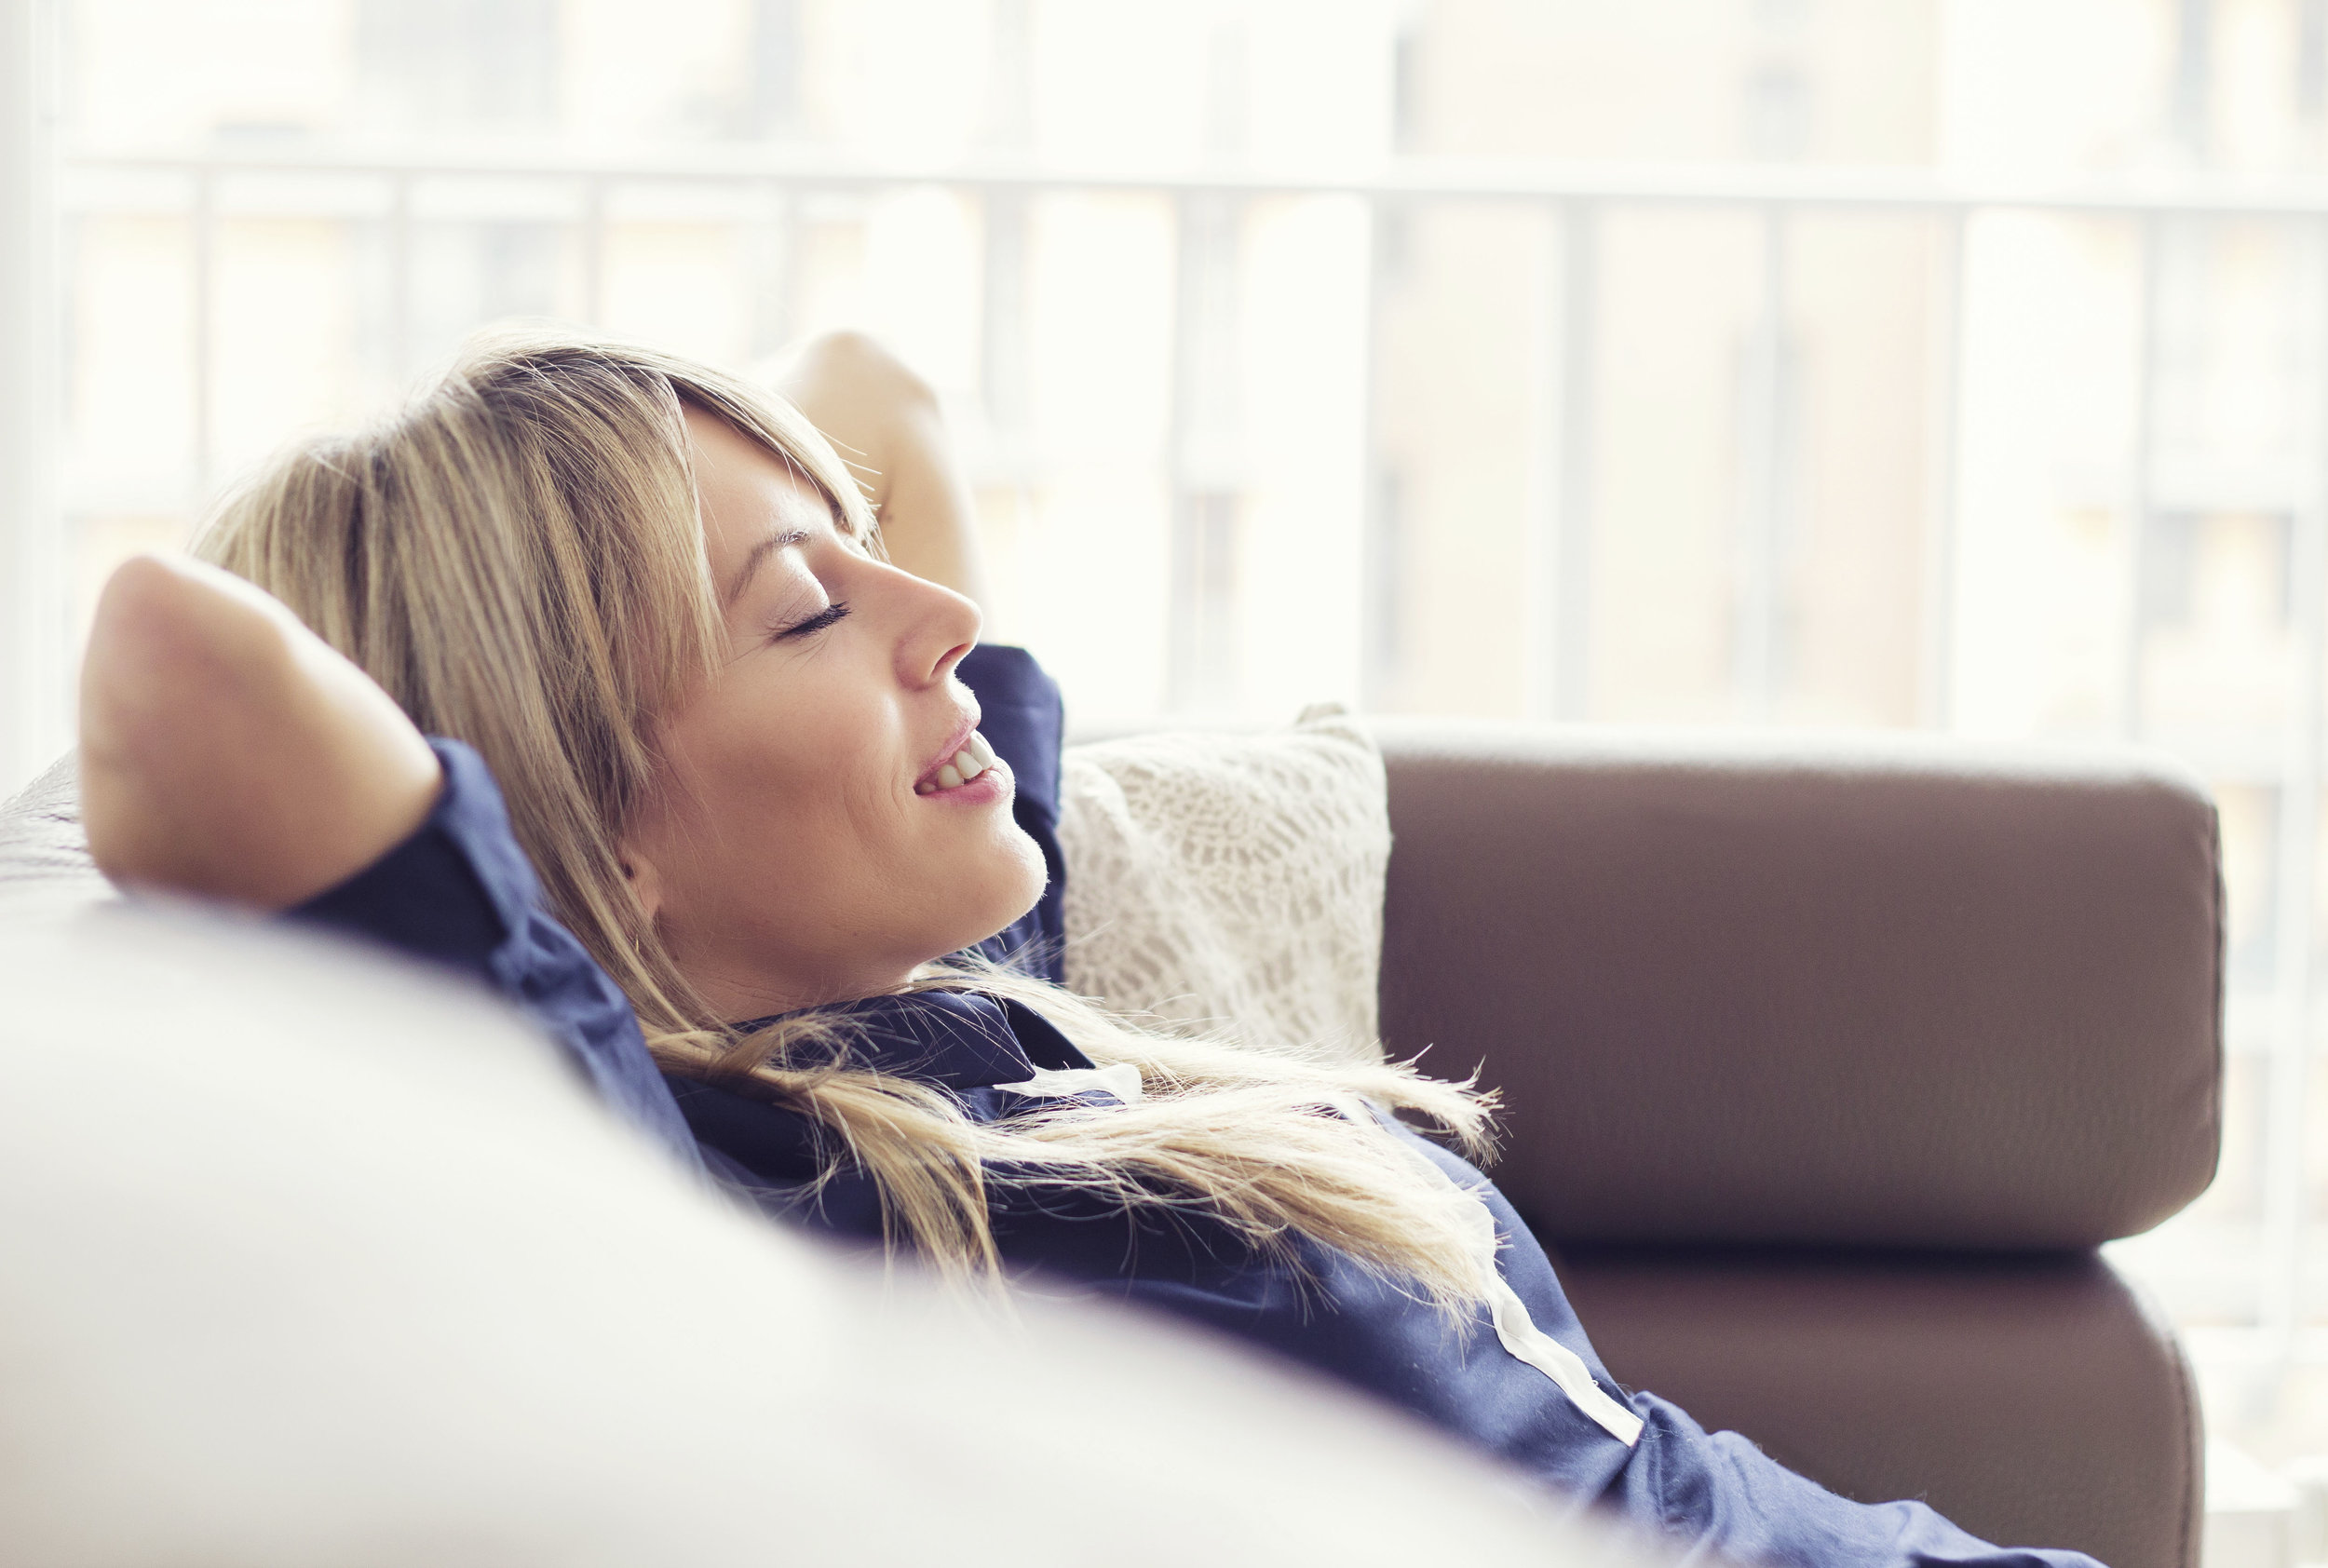 Relaxed_woman_-_iStock_-_Smaller_version.jpg